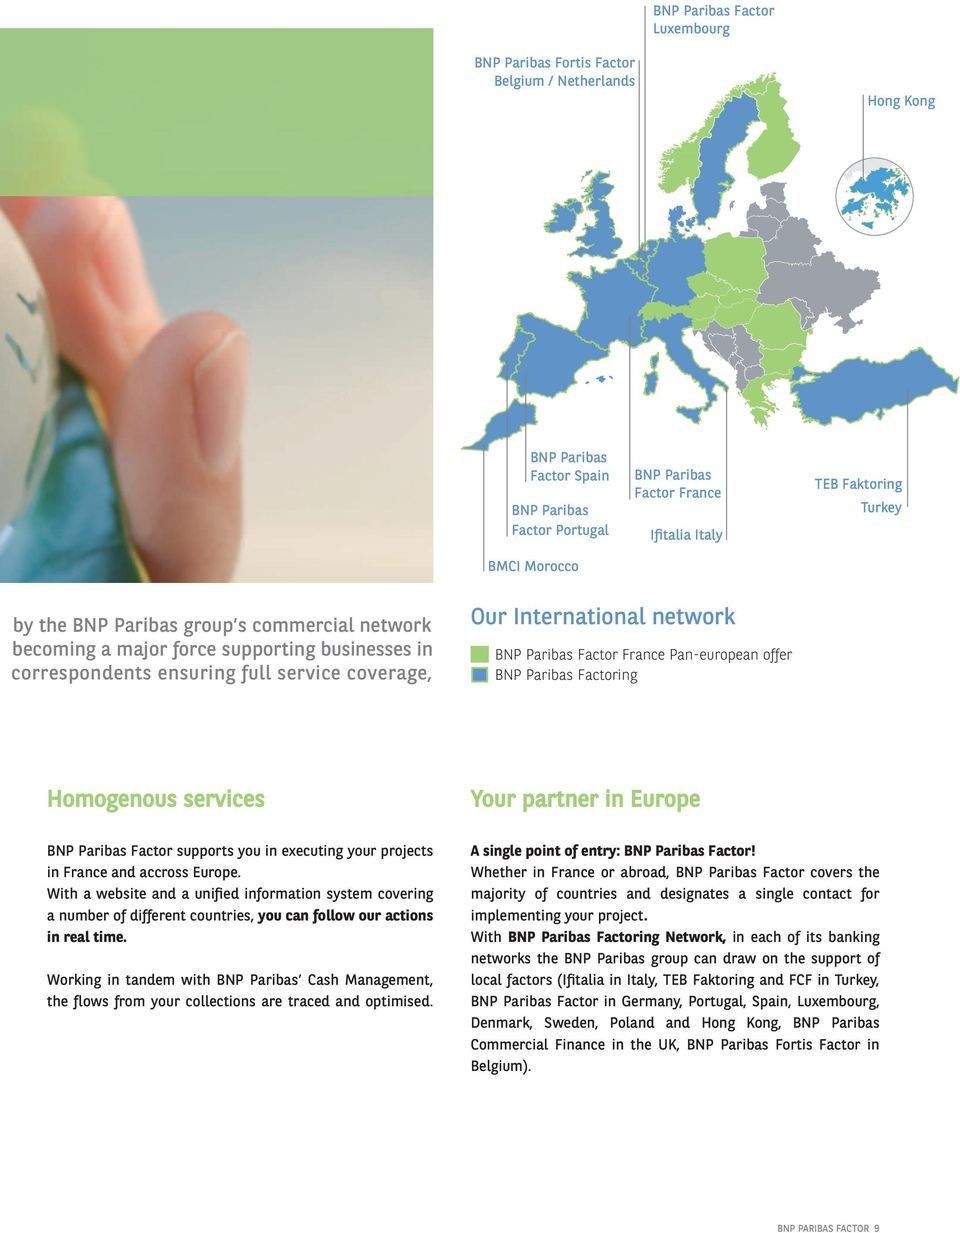 Factor France Pan-european offer BNP Paribas Factoring Homogenous services Your partner in Europe BNP Paribas Factor supports you in executing your projects in France and accross Europe.